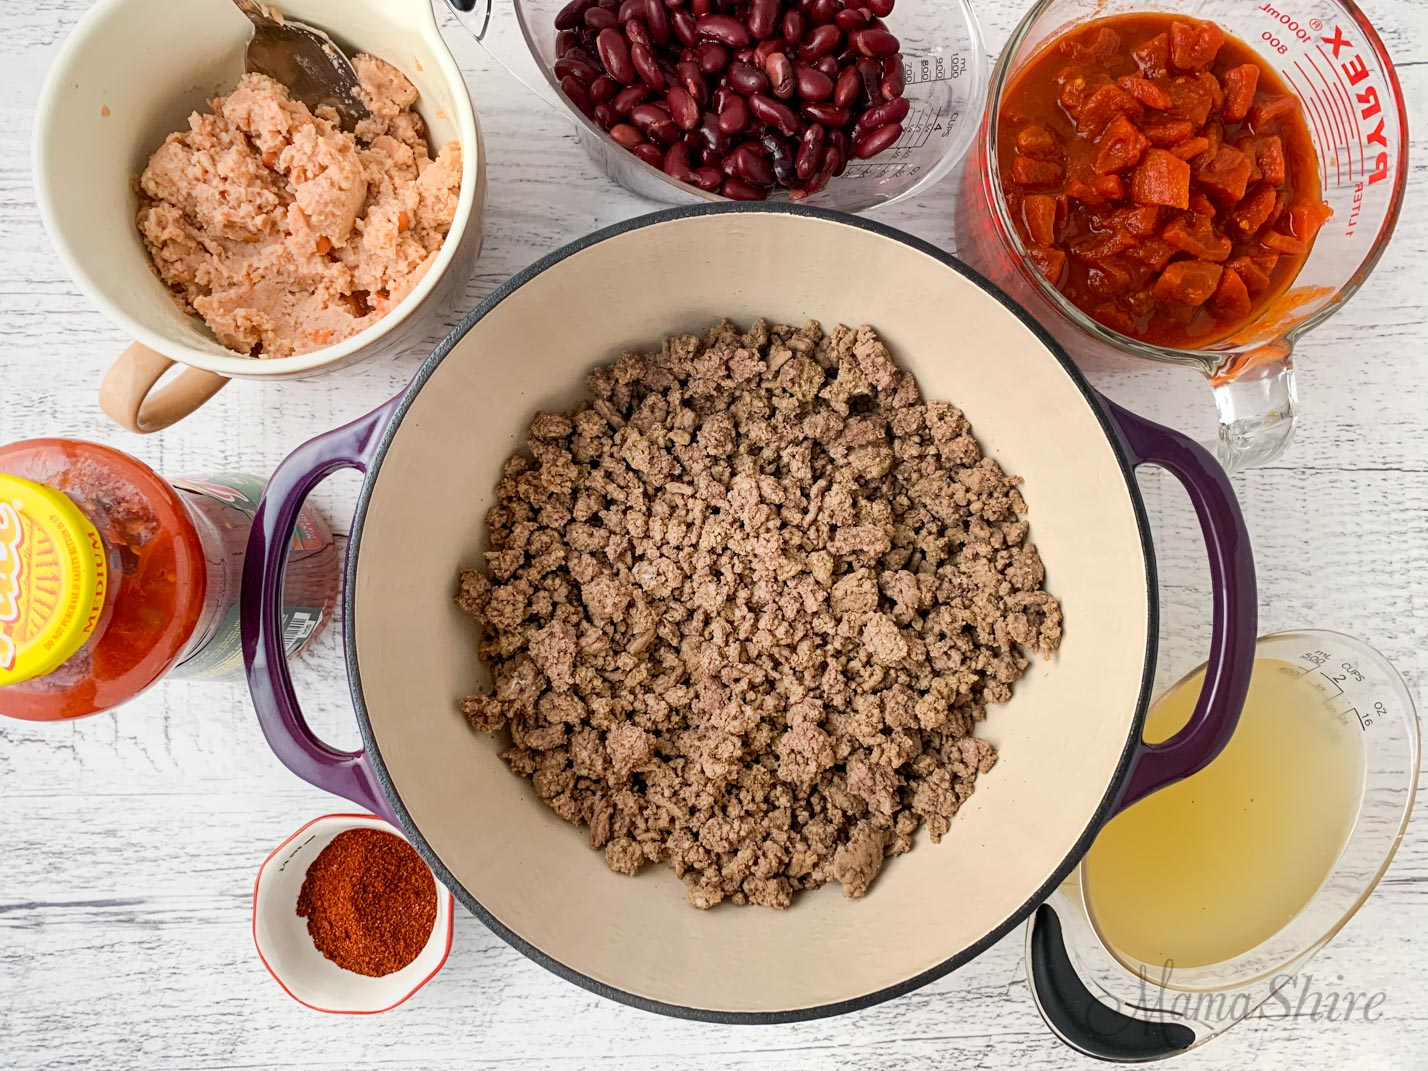 Ingredients for gluten-free chili